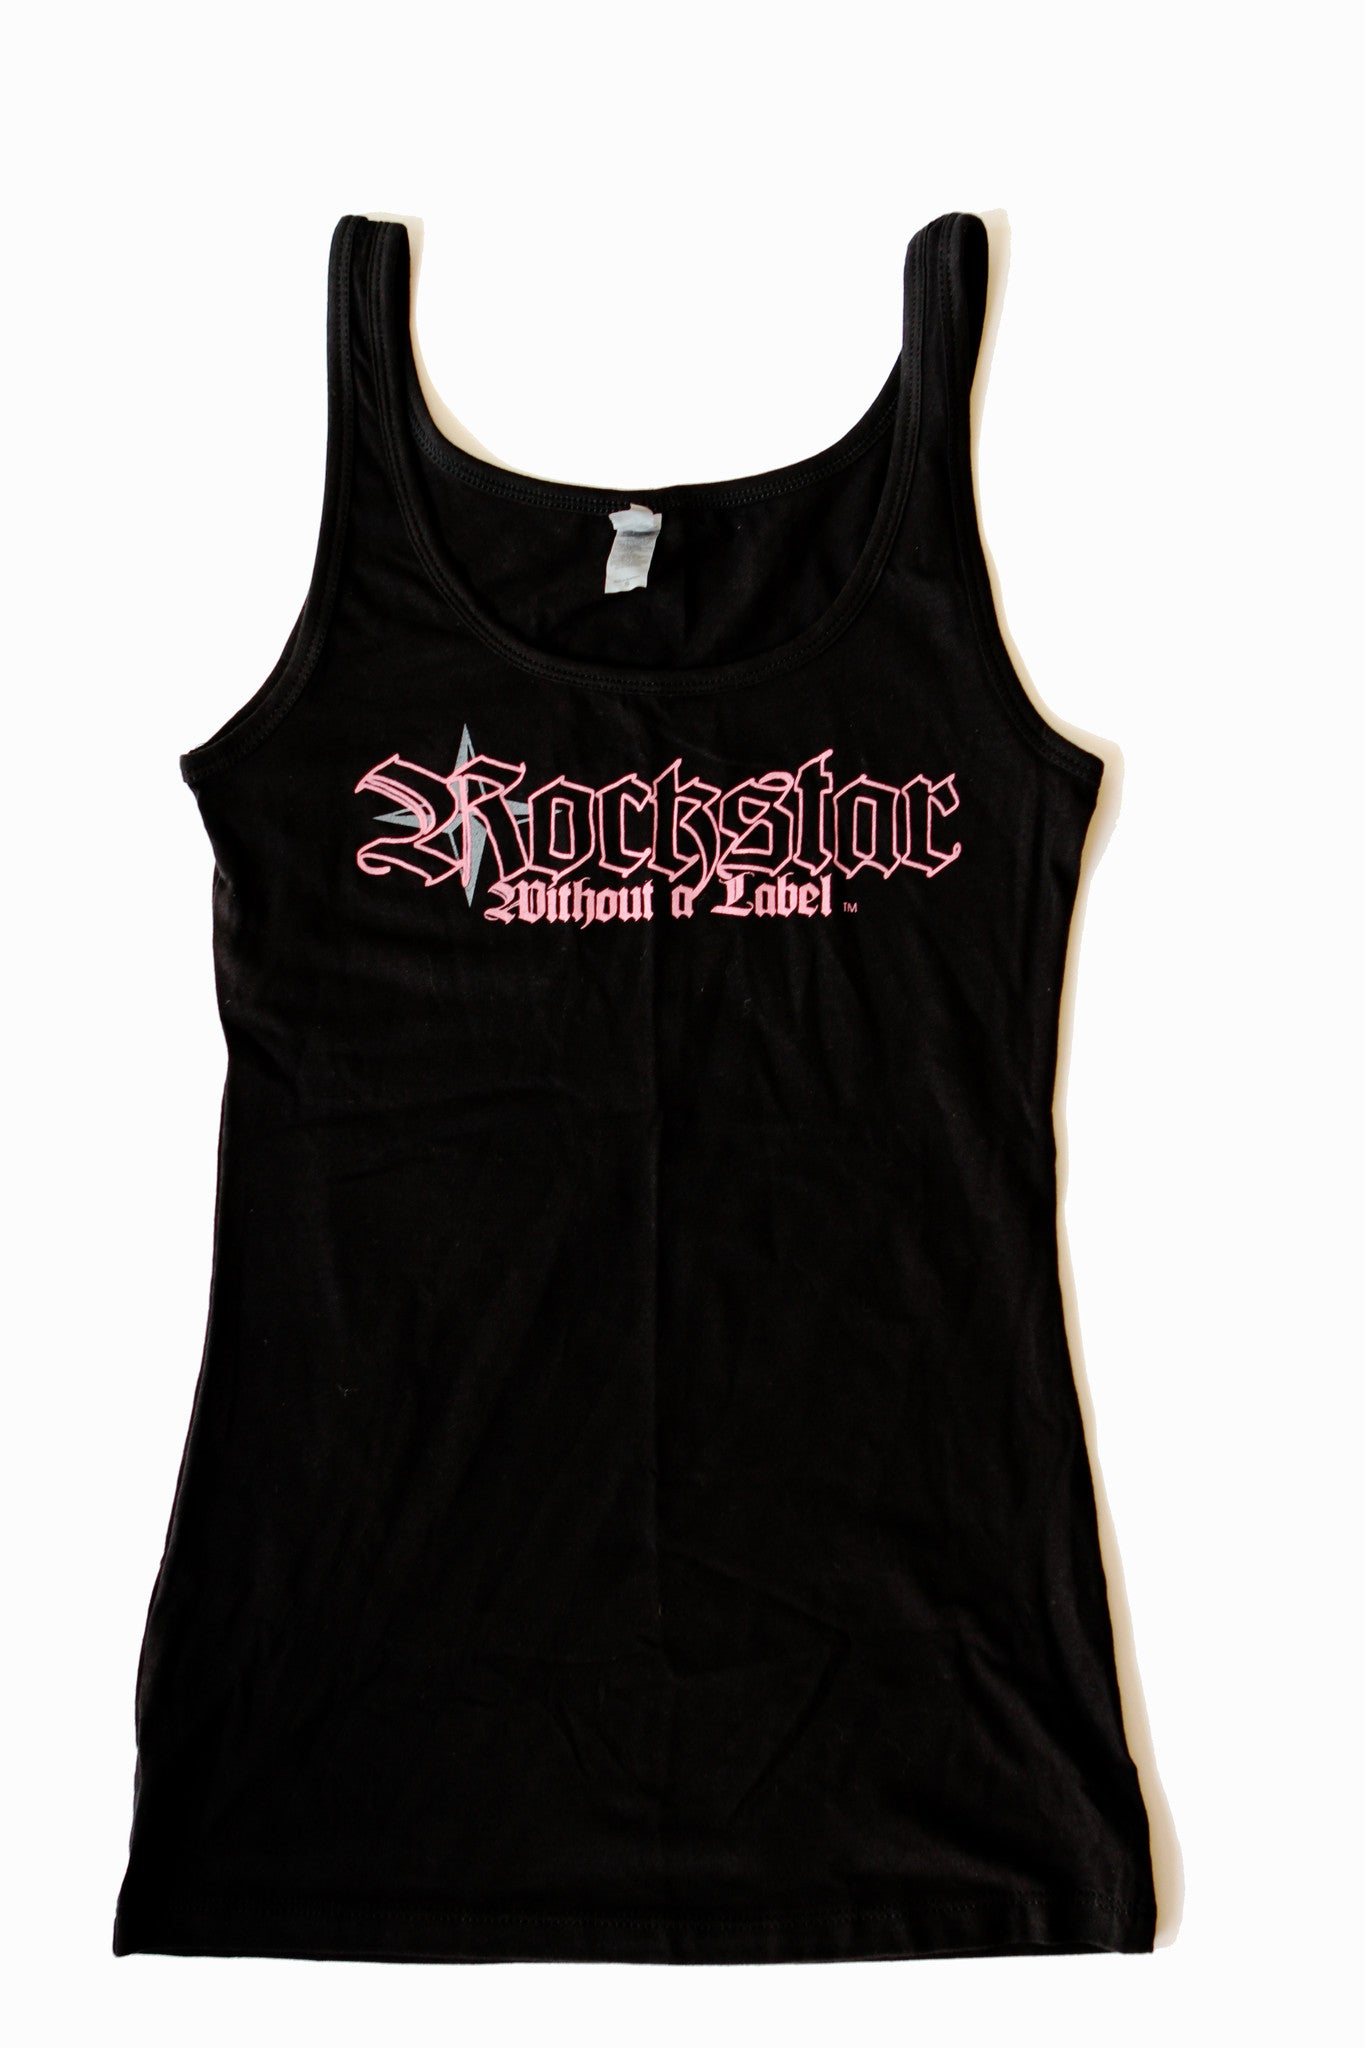 Tank Top/Womens in Black with Pink Outline Logo